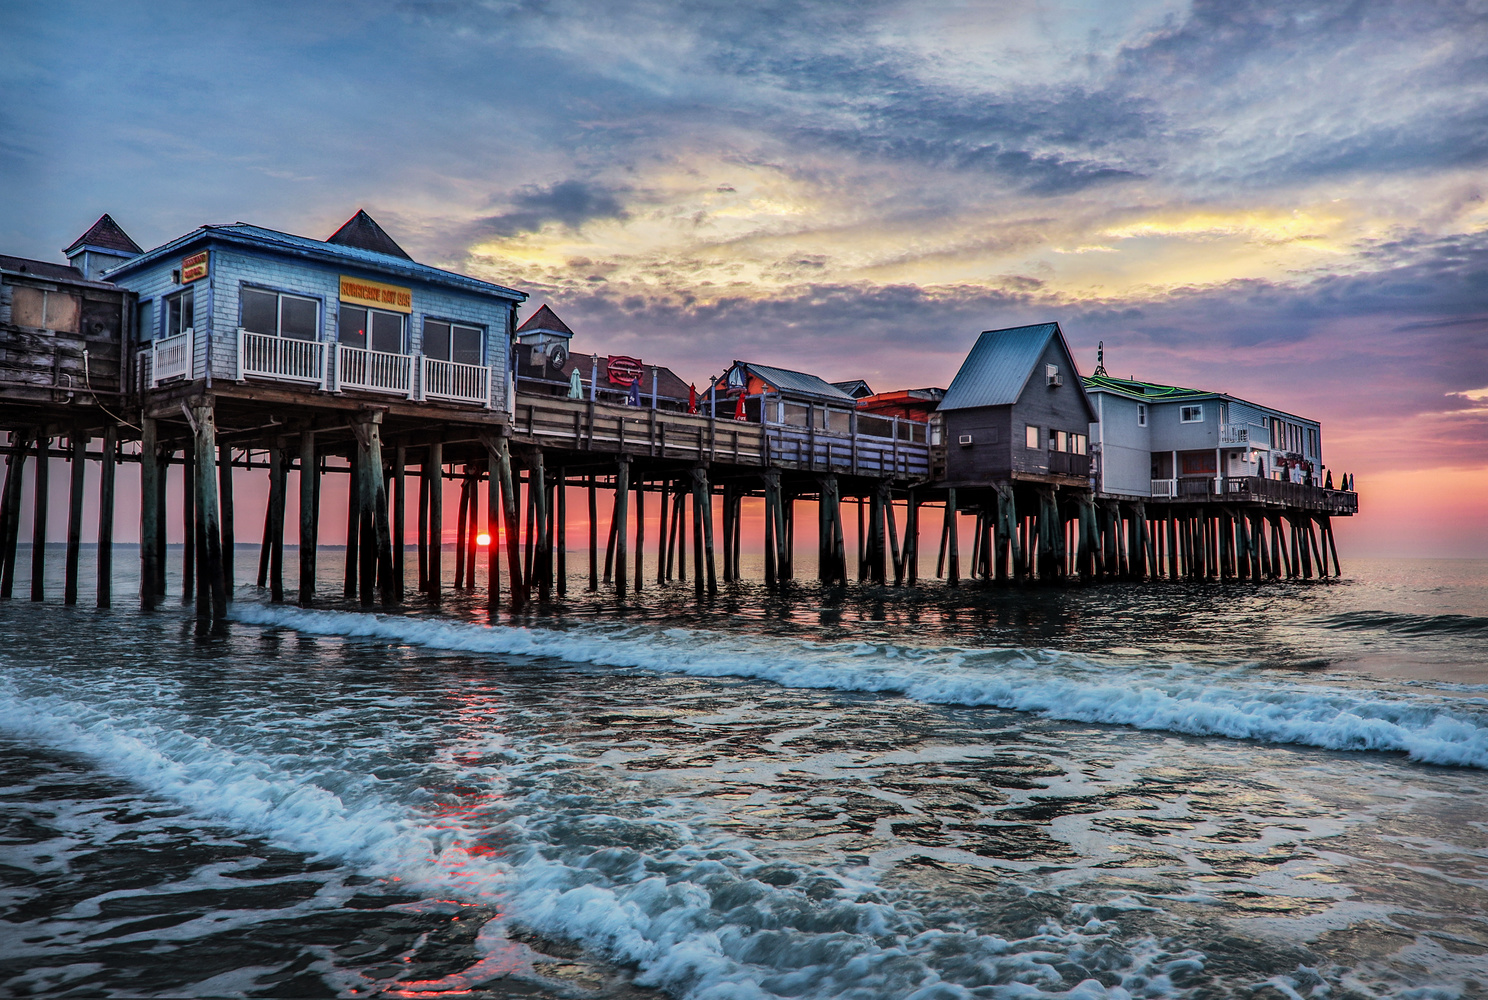 The Pier at Old Orchard Beach by Steve Shannon